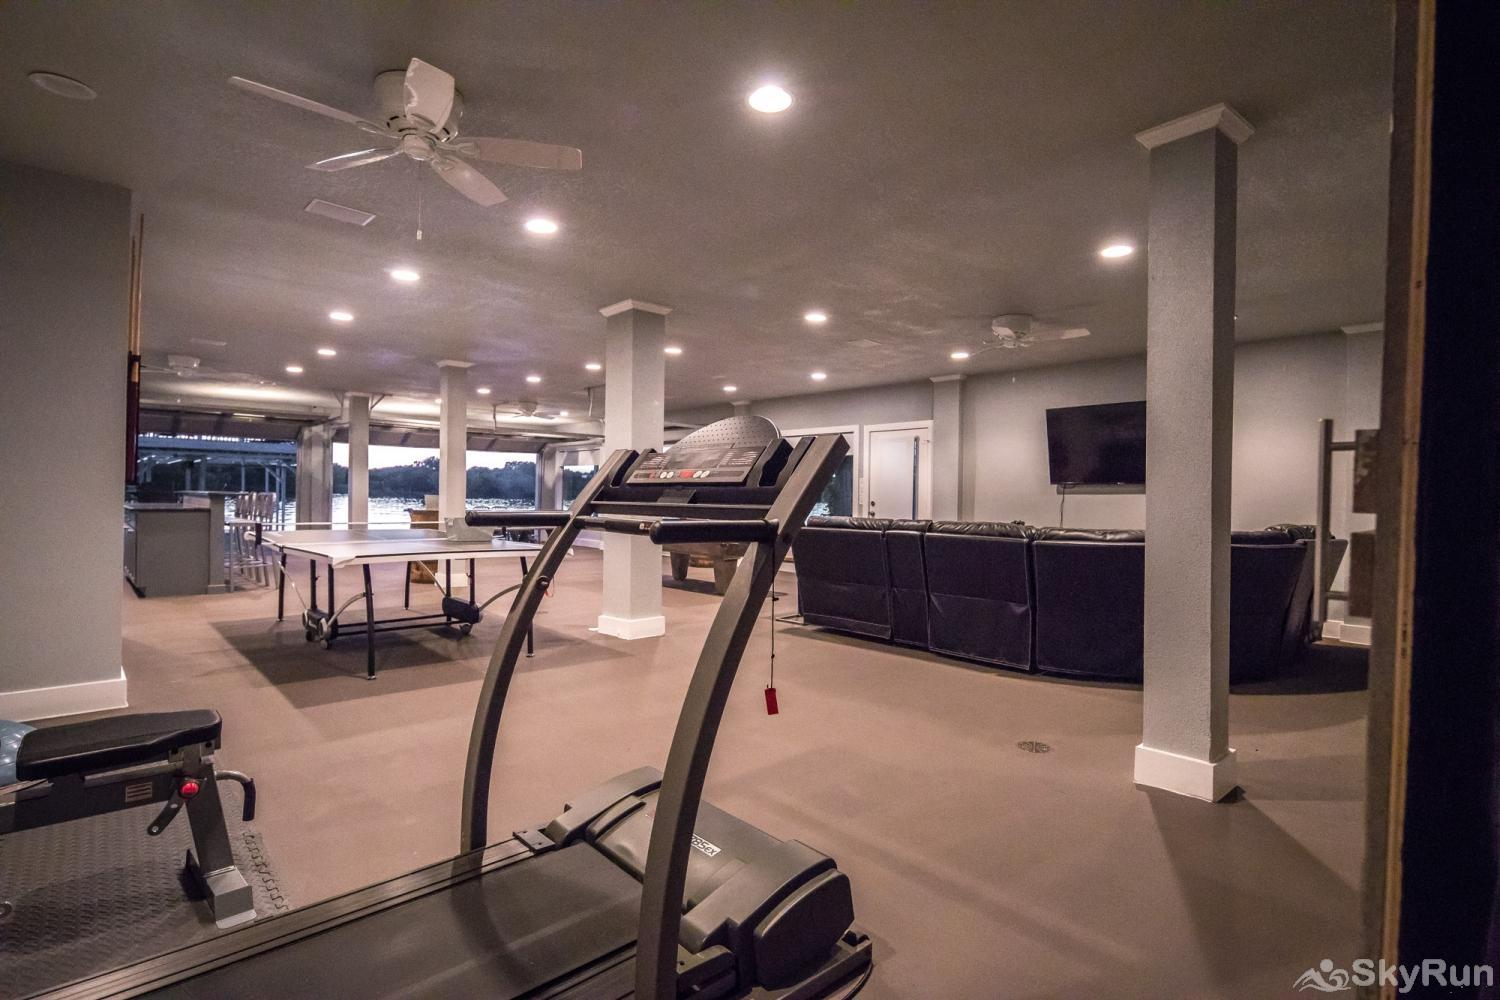 PARADISE POINTE Workout Space with Treadmill